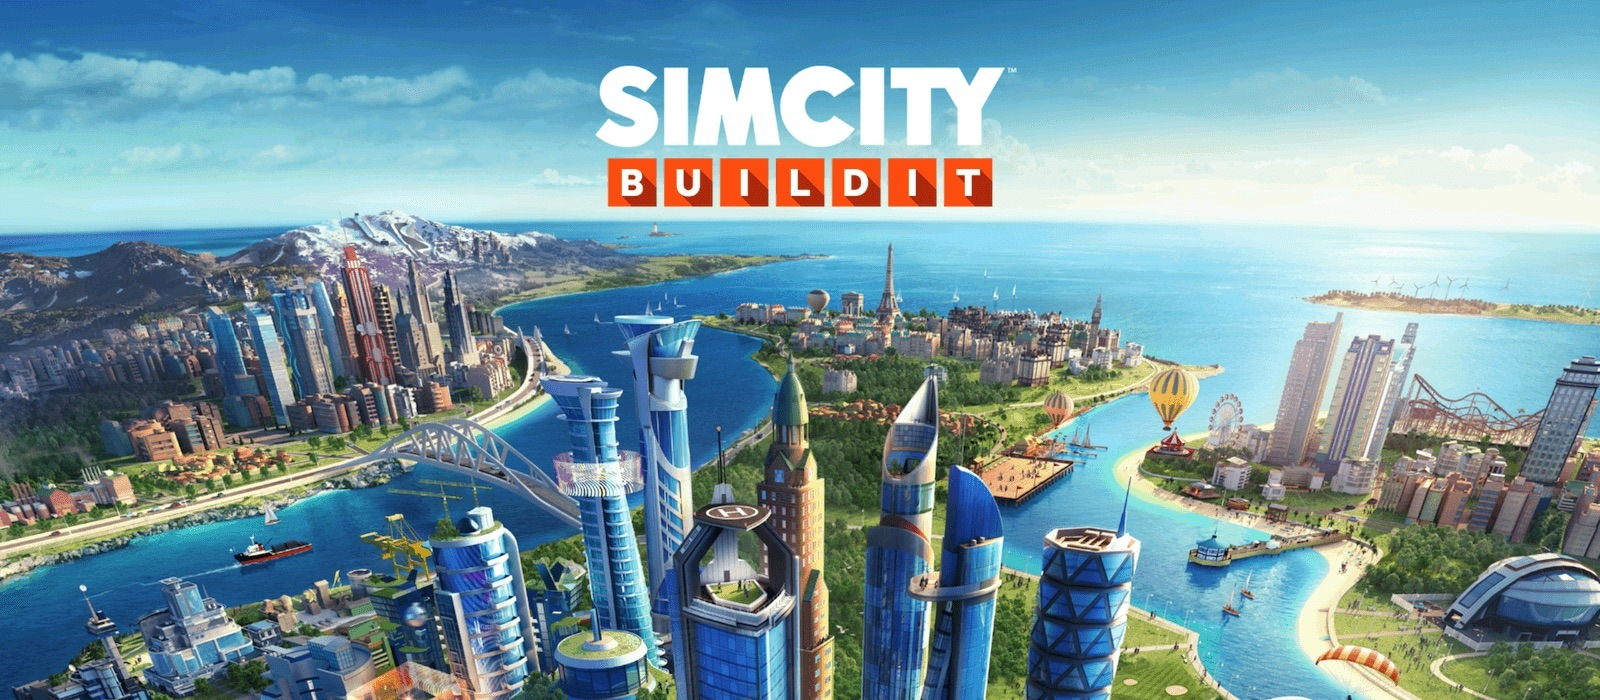 SimCity BuildIt (Android) Game Review & Beginner's Guide